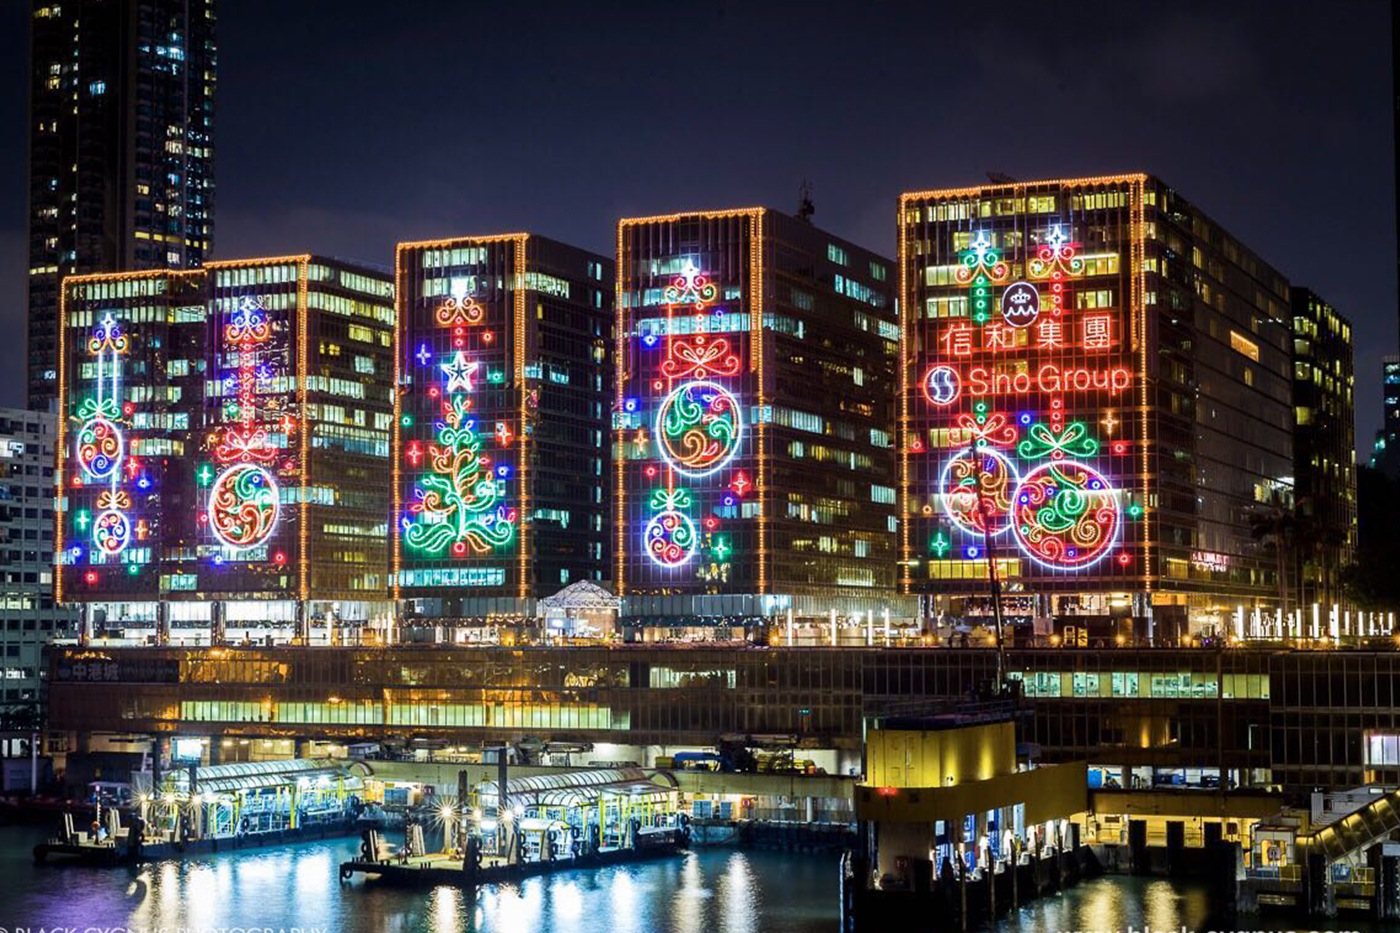 Hong Kong S Skyline Gets Dressed Up For Christmas Zolima